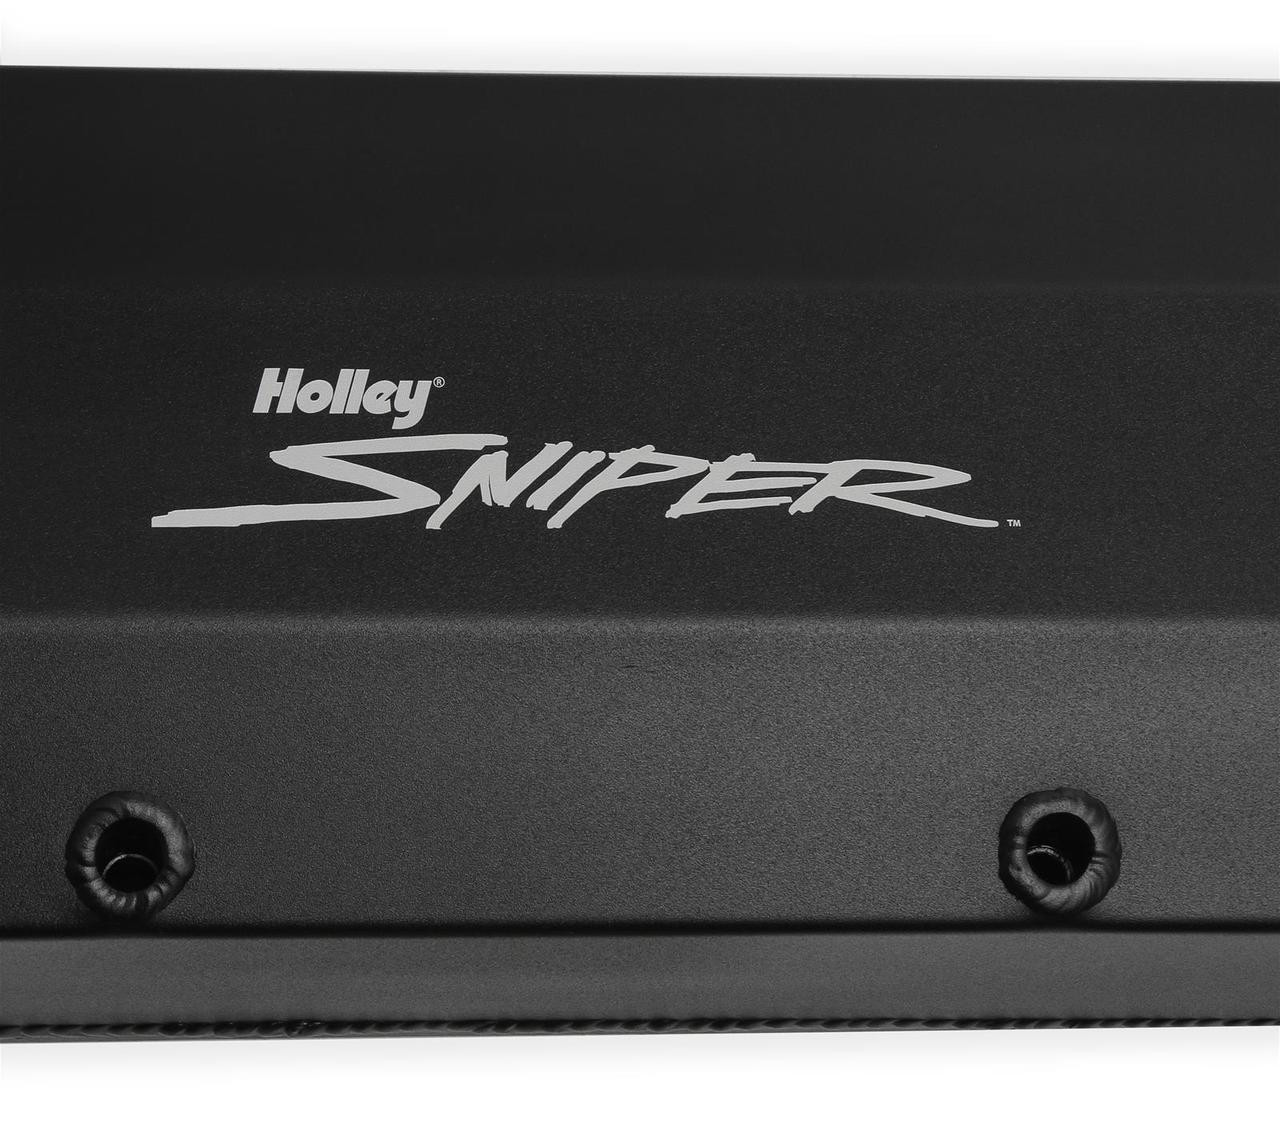 Holley Sniper Fabricated Aluminum Valve Covers 890007B